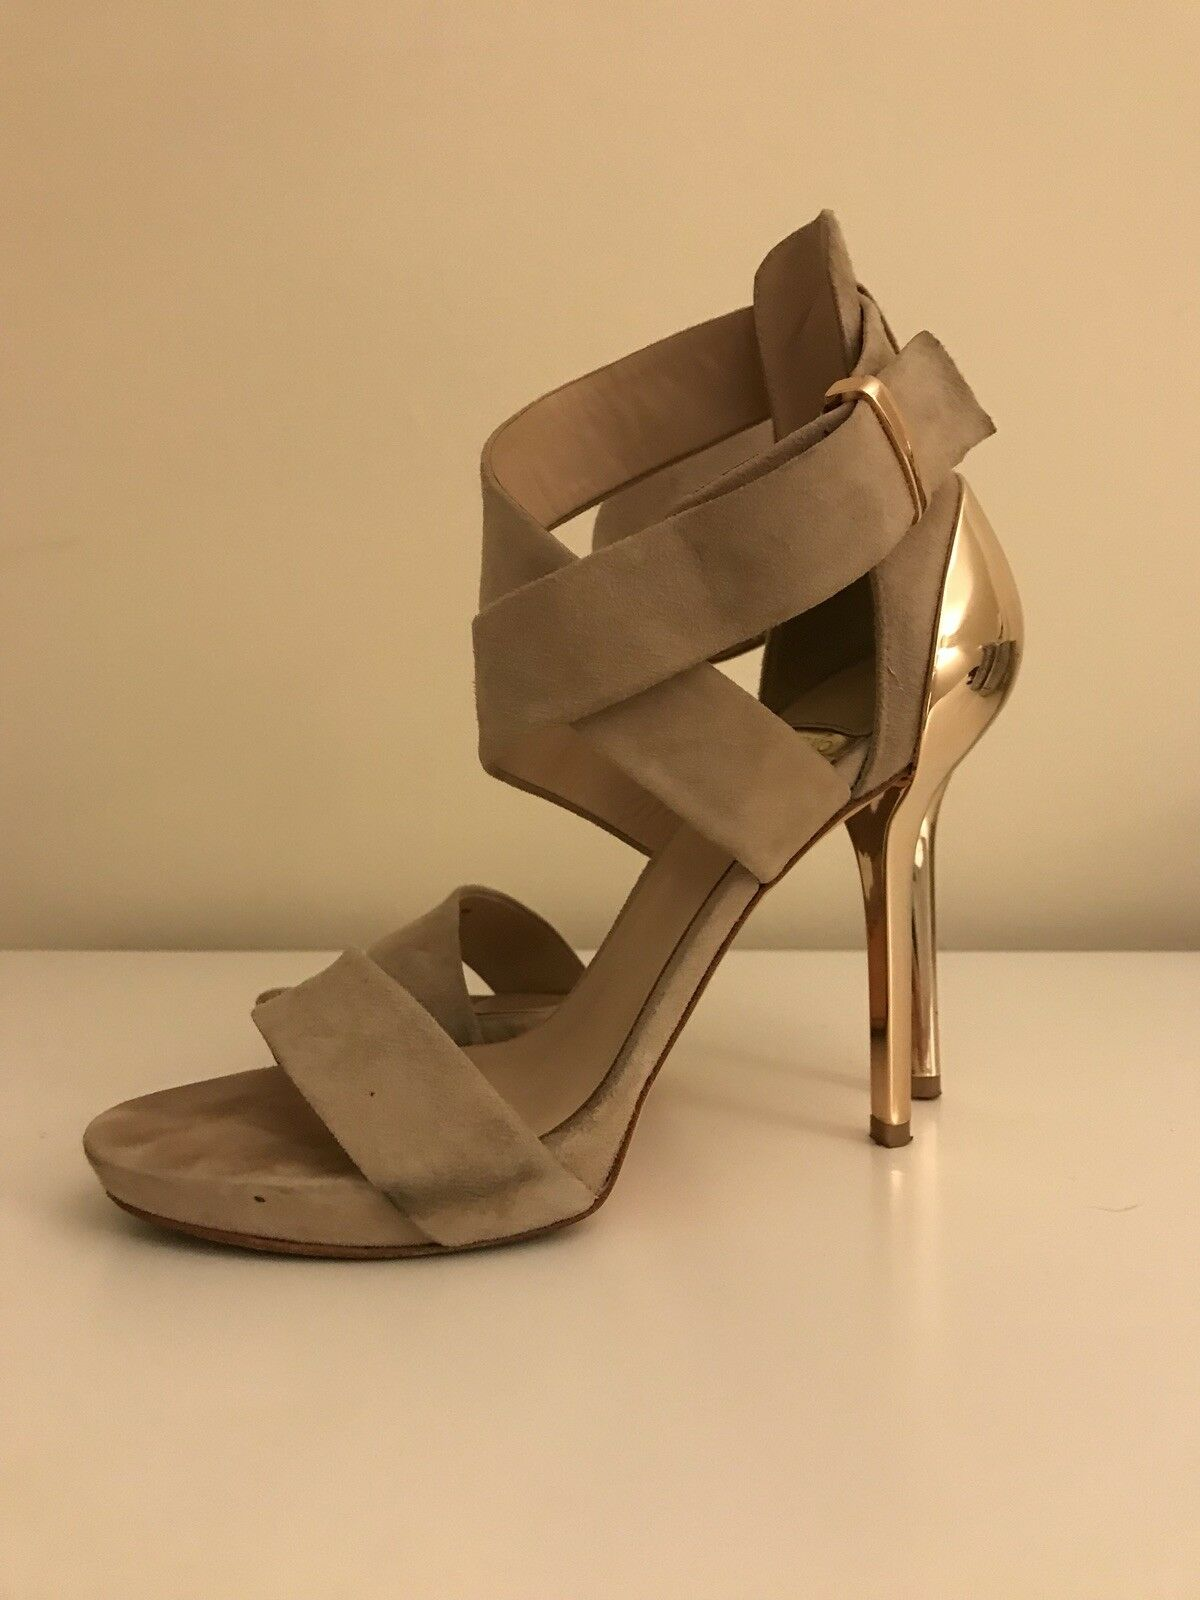 Guess Sole By Marciano Shoes Leather Sole Guess SZ 7 f6125b